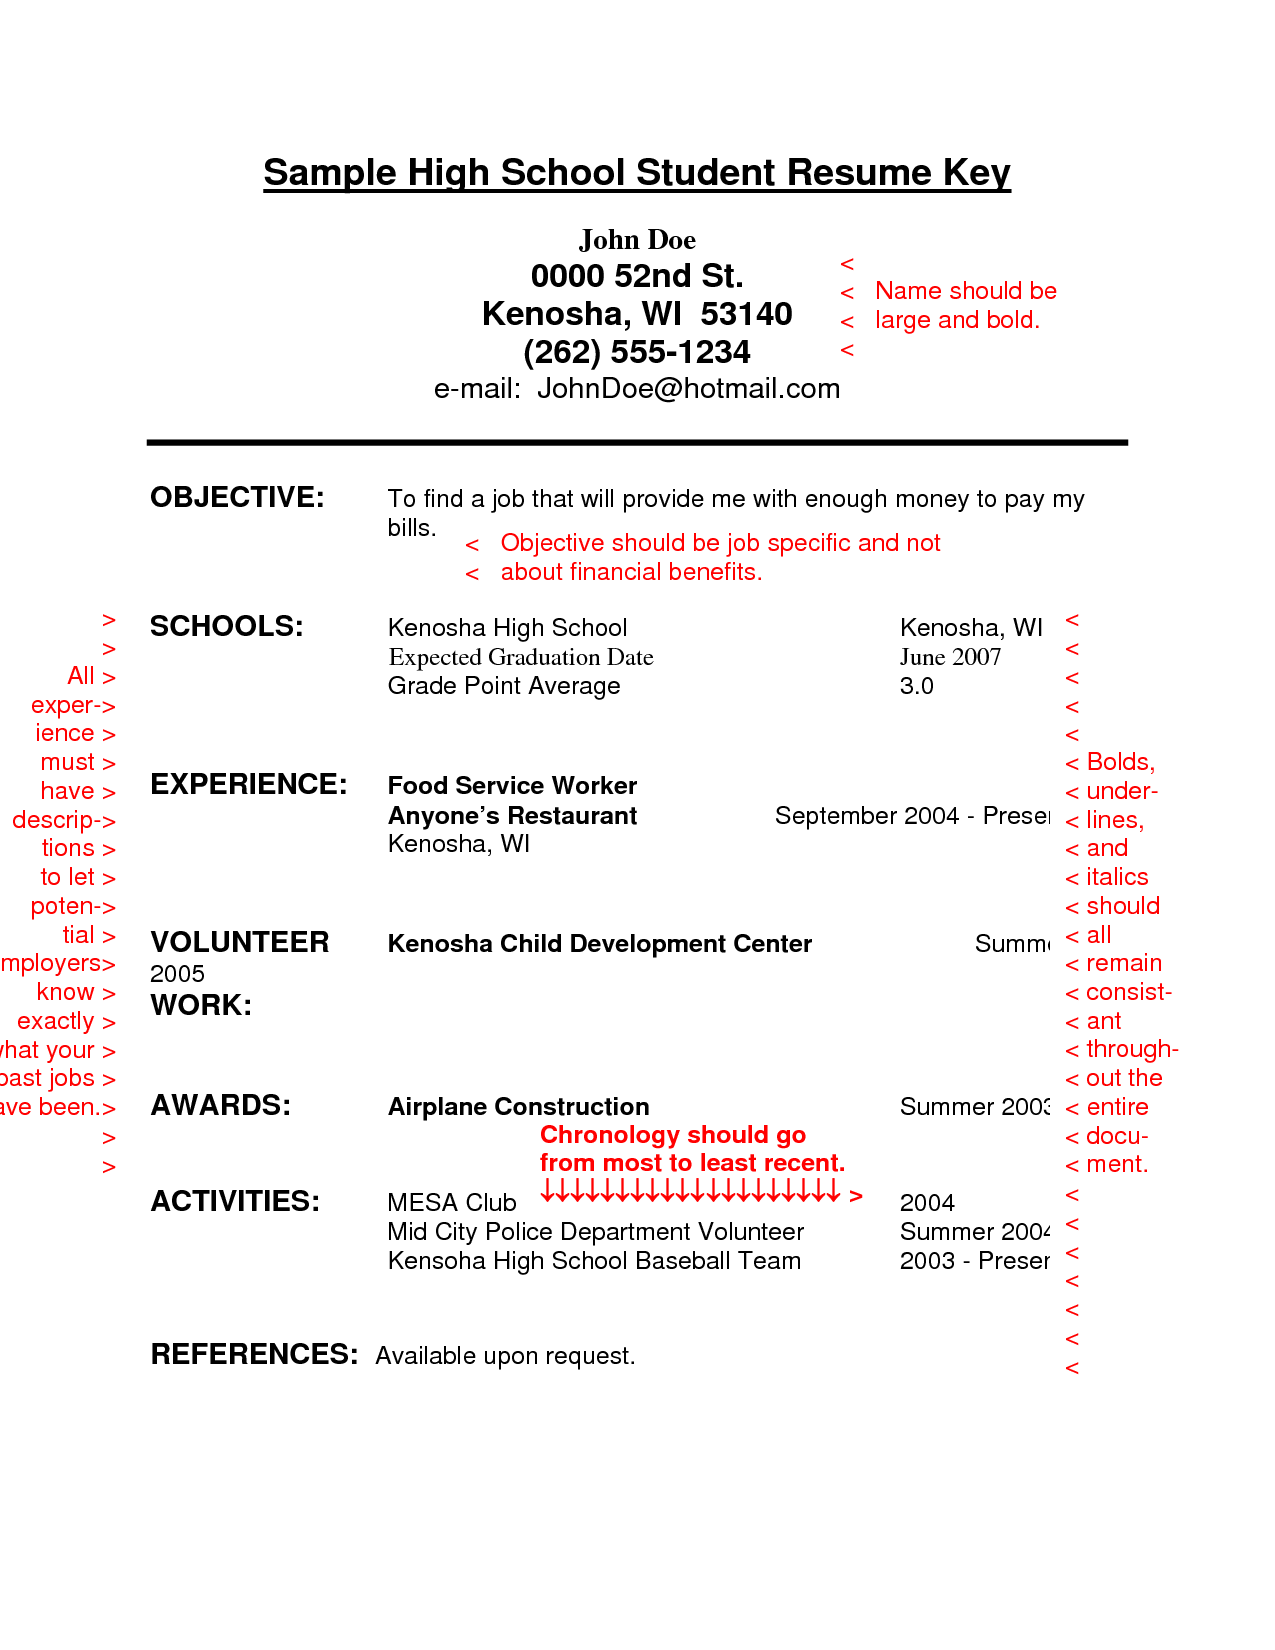 Example Job Resume Resume Sample For High School Students With No Experience  Http